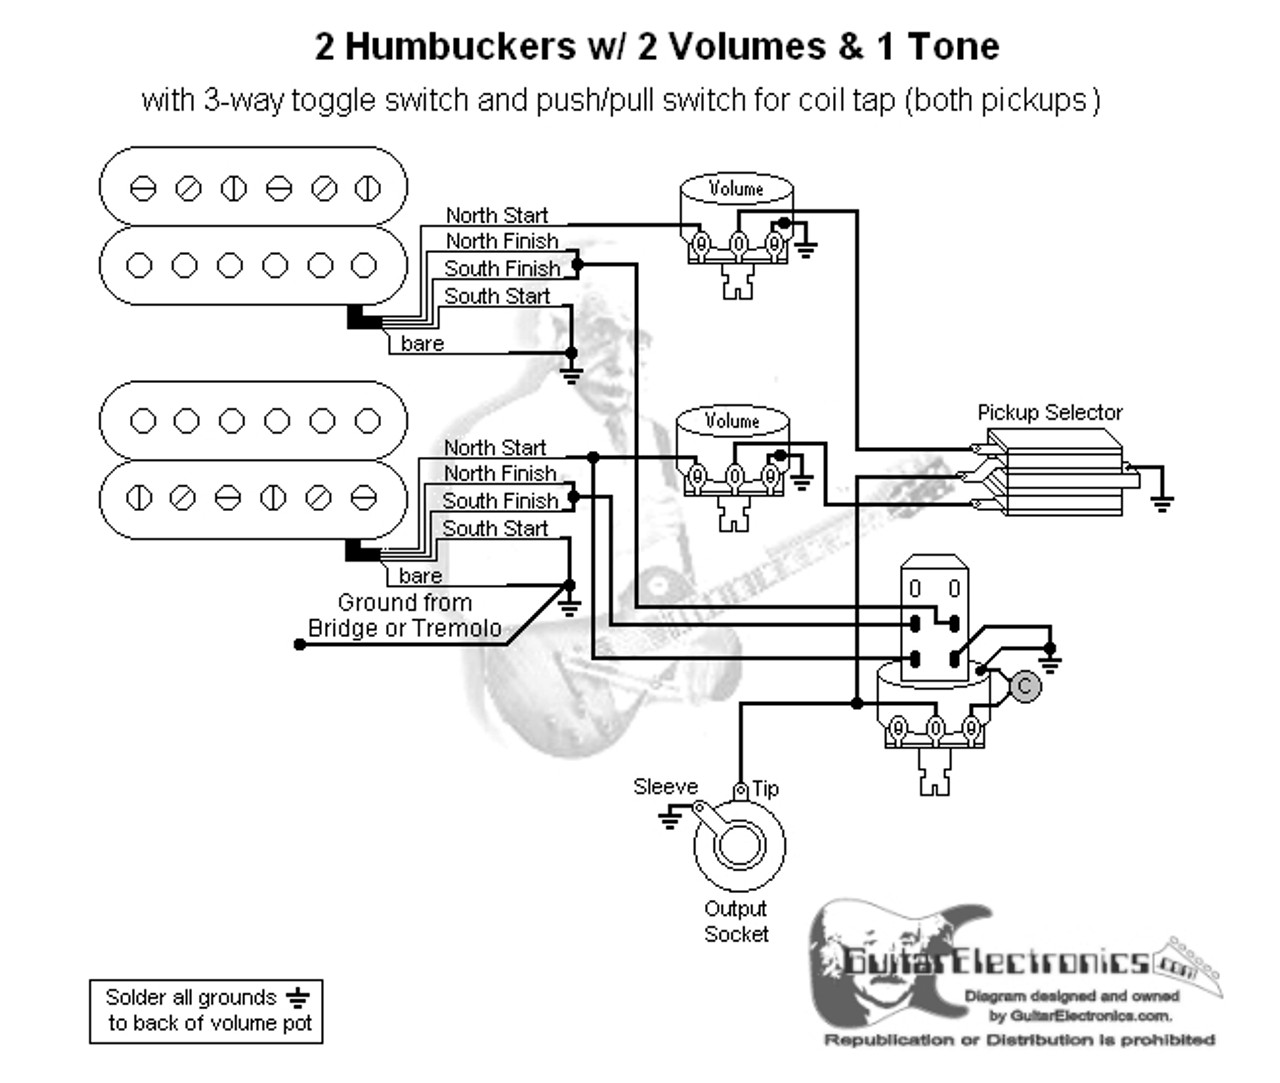 small resolution of diagram 2 humbuckers 3way toggle switch 2 volumes 1 tone coil tap diagram 2 humbuckers 3 way lever switch 2 volumes 1 tone individual